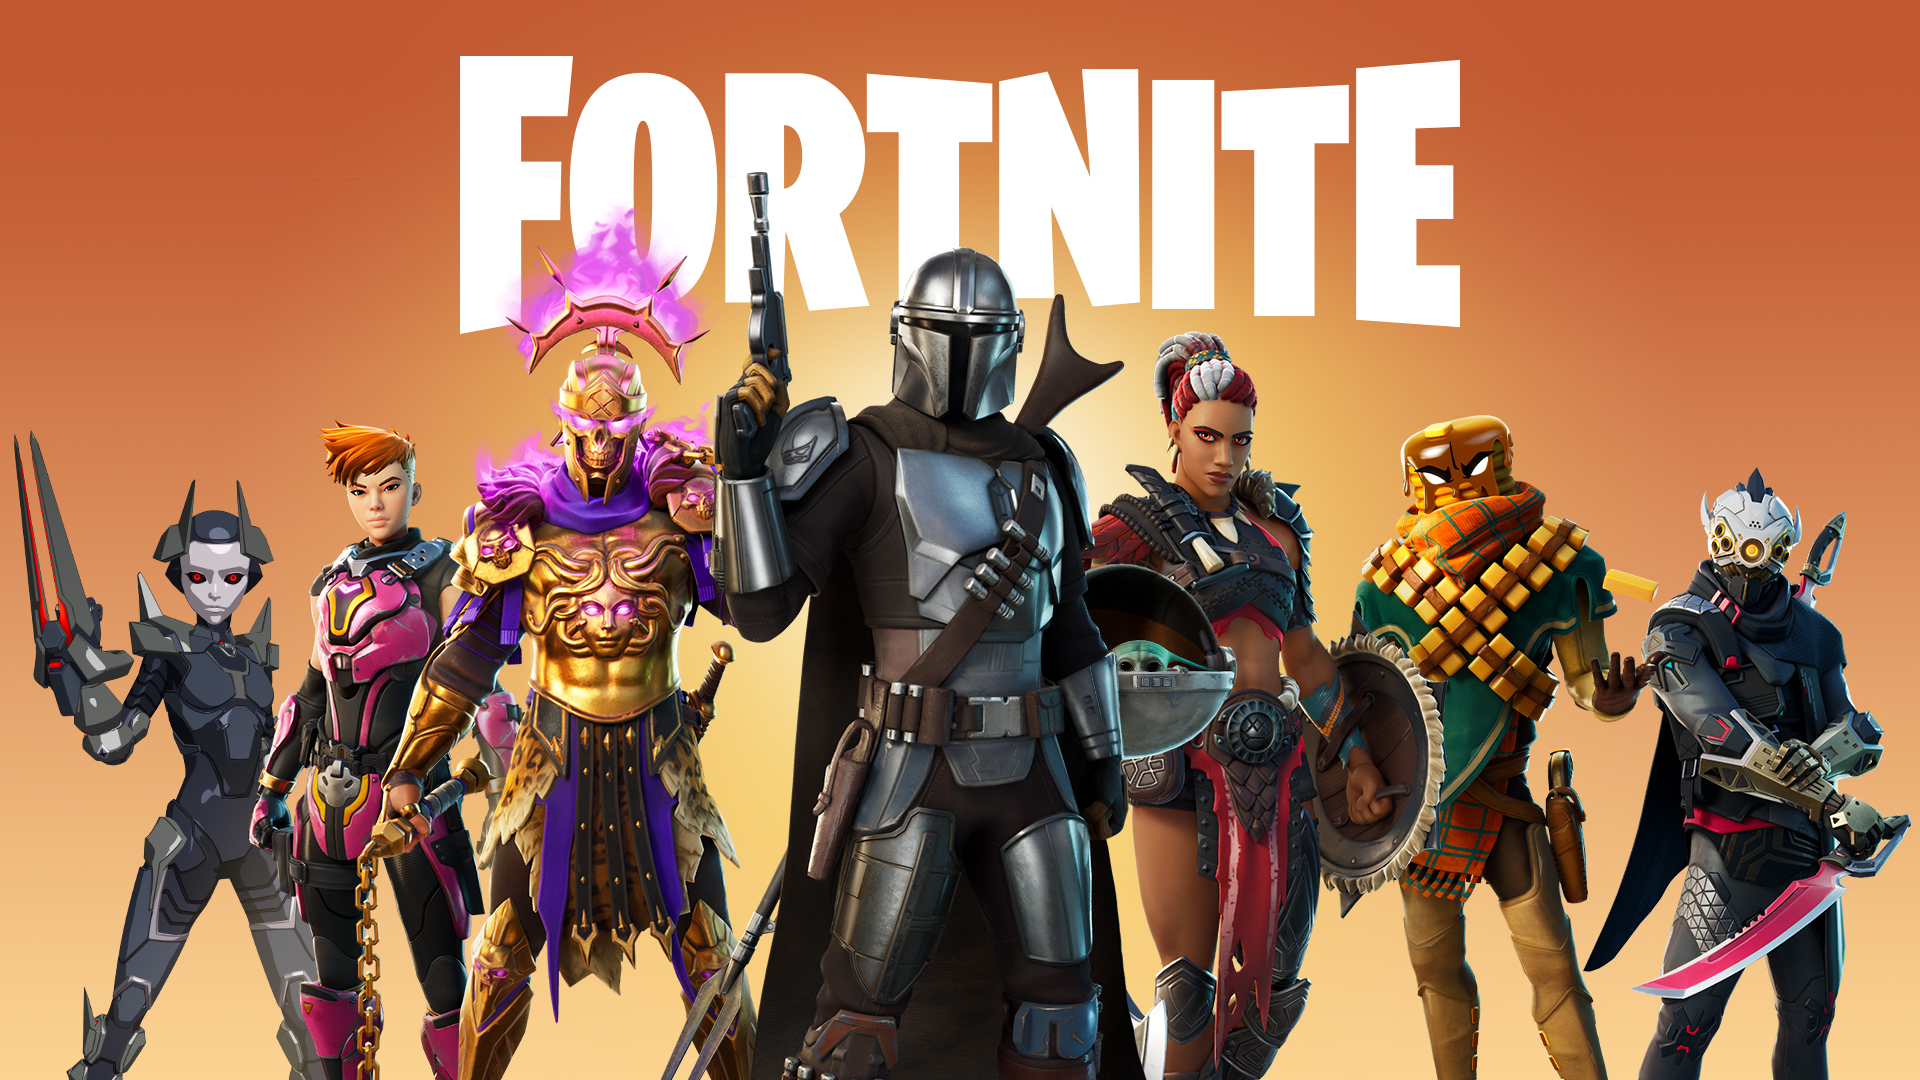 Fortnite Ratchet And Clank Fortnite How To Get The Orin Skin New Rare Outfit